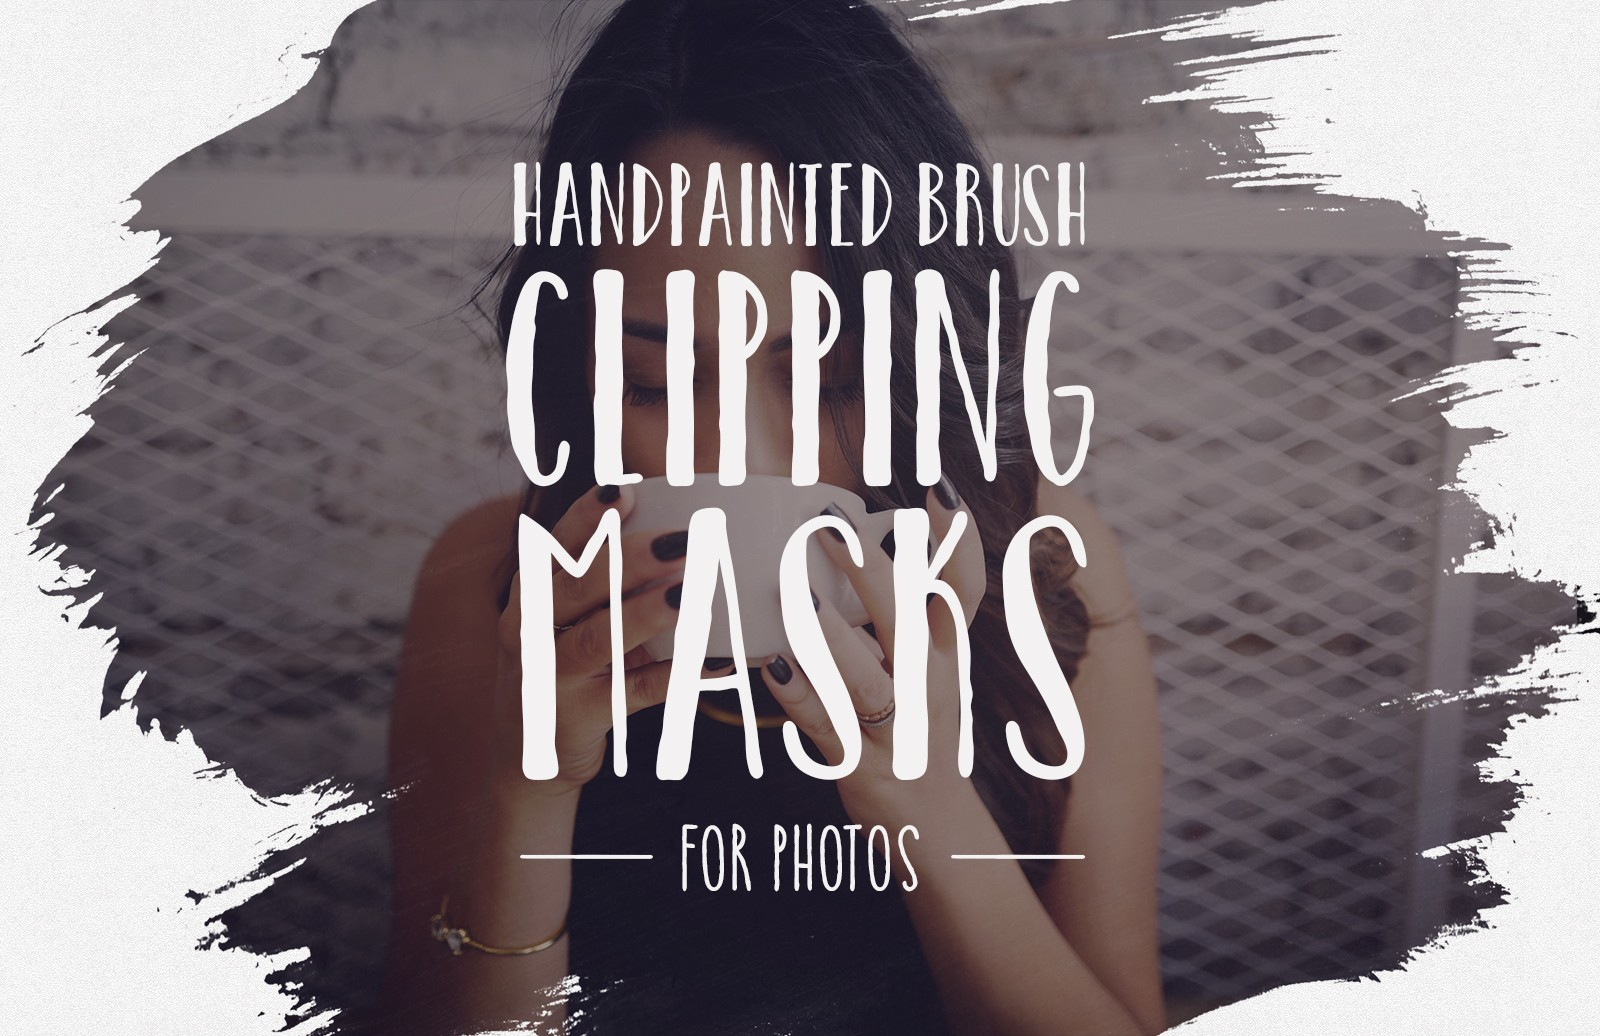 Hand Painted Brush Clipping Masks